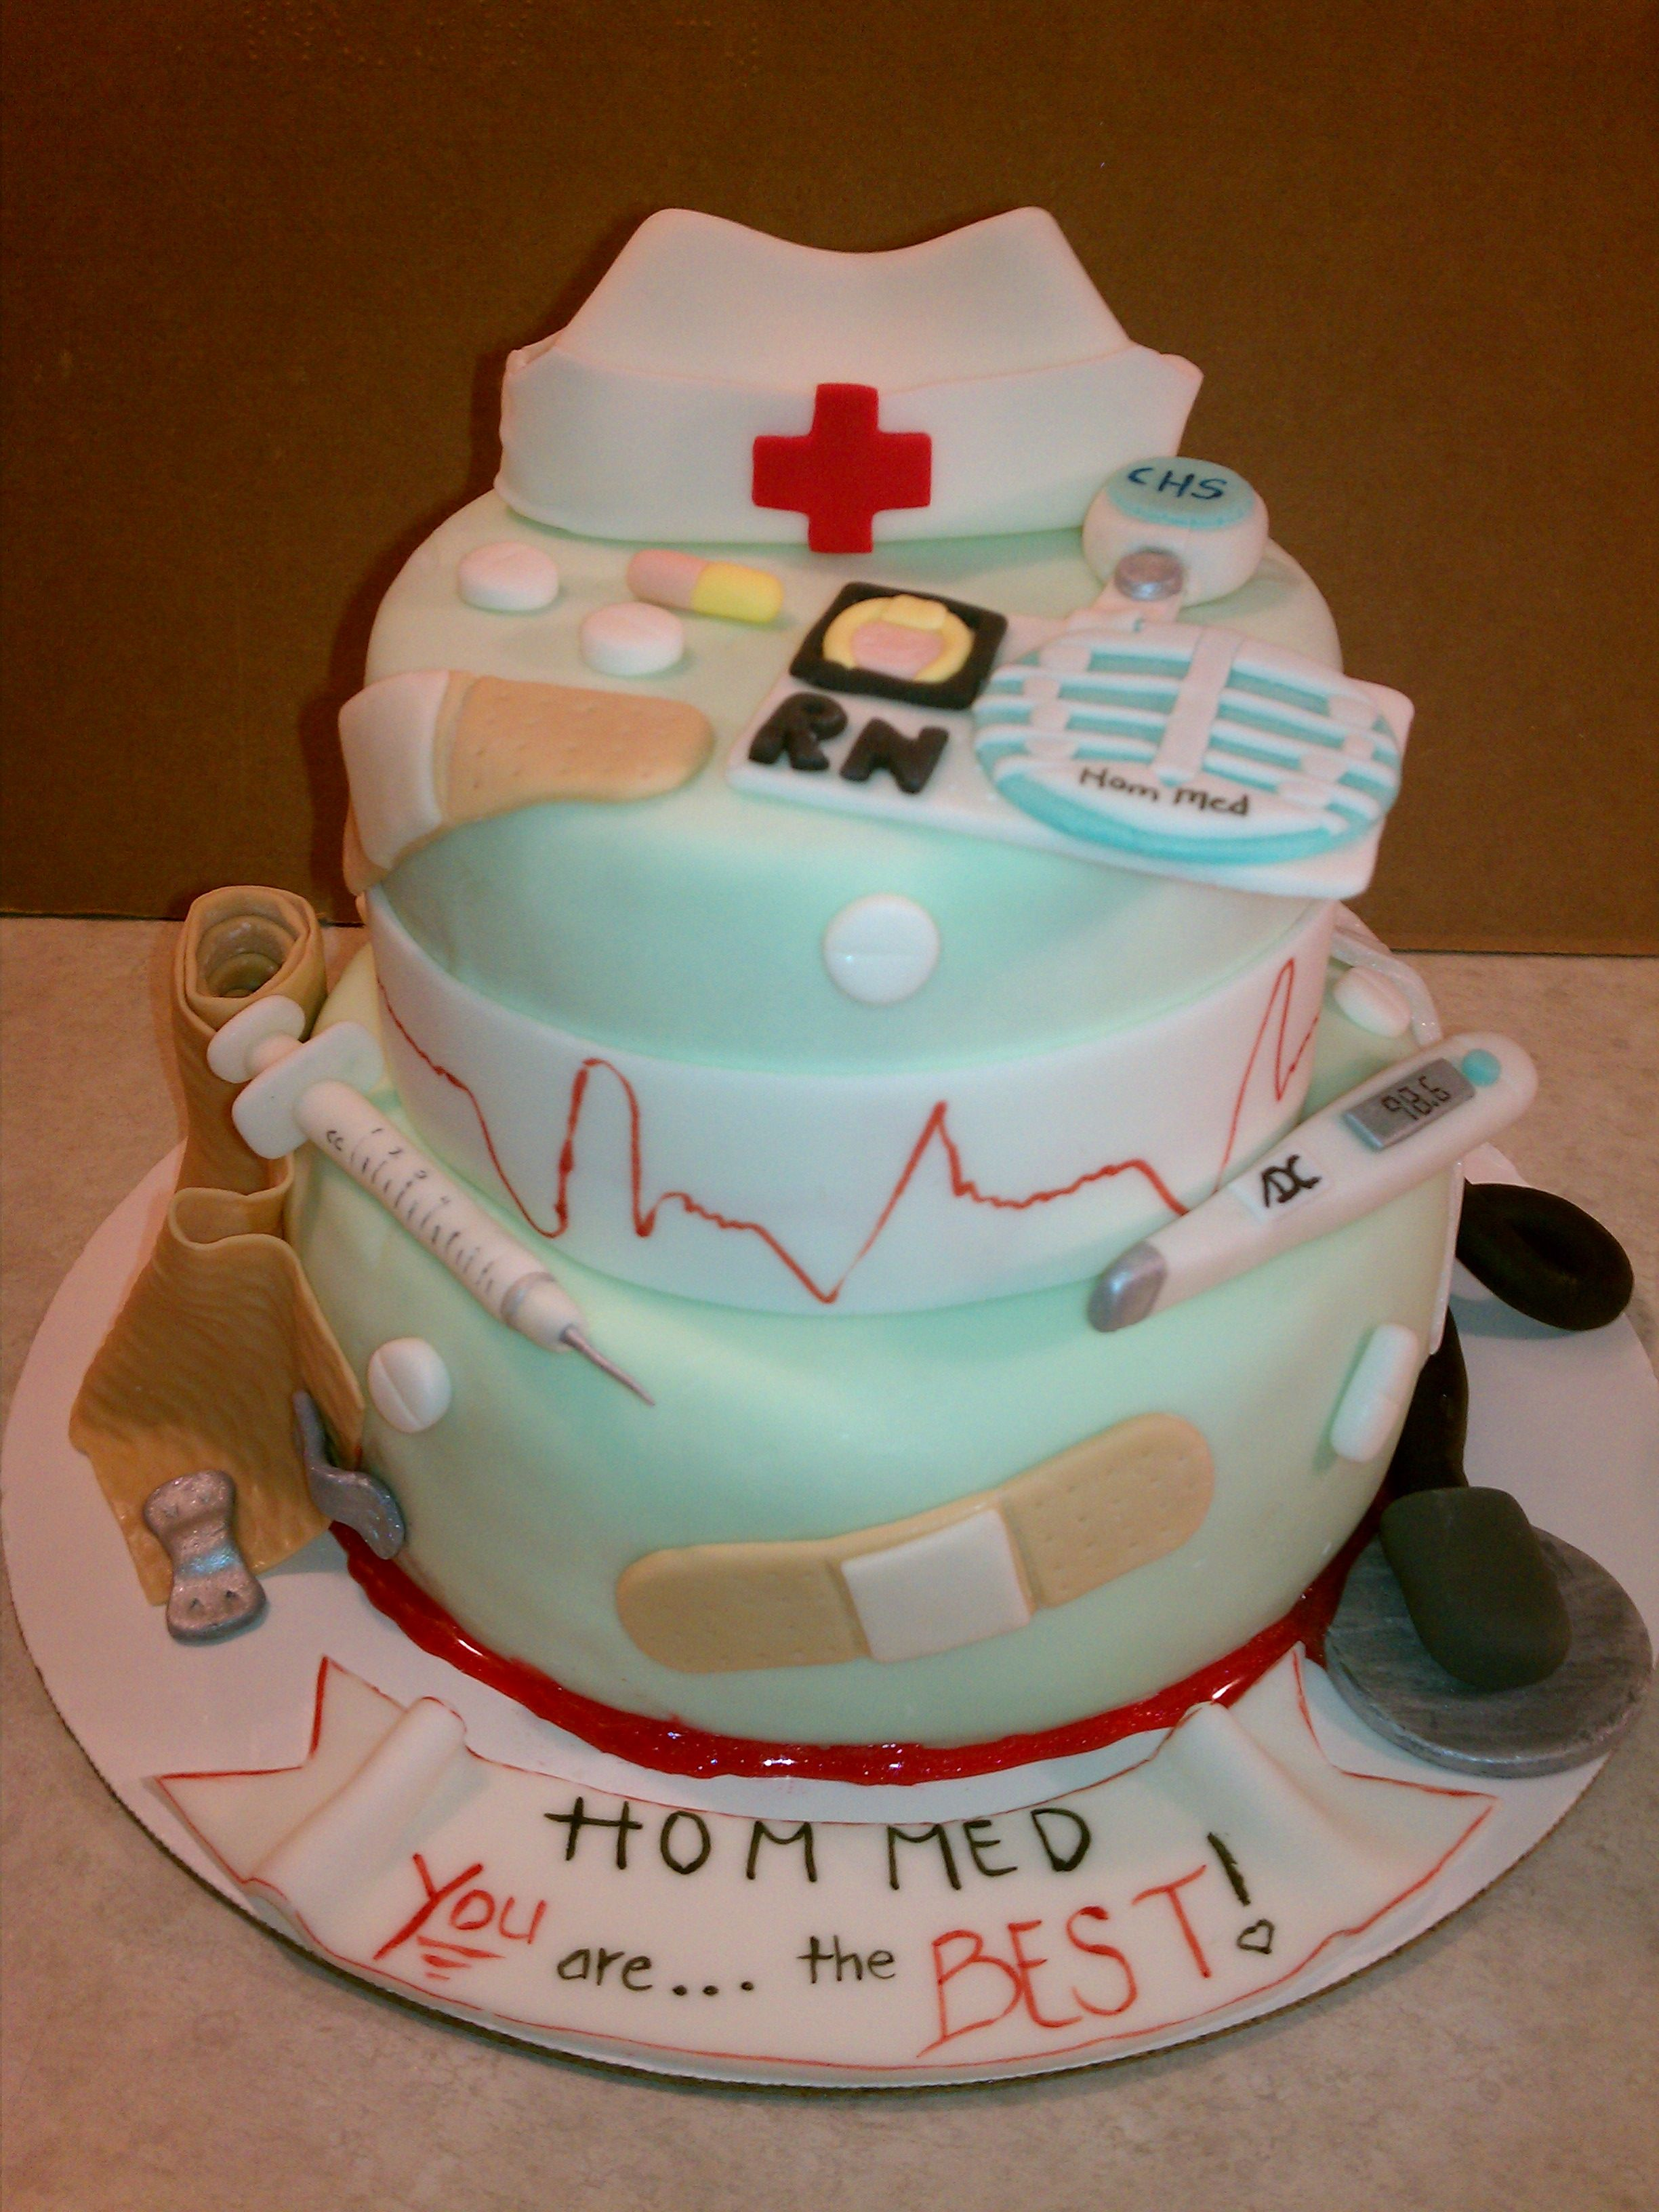 Nurses Day Cake Heart Strings Cakes Made By Me Cake